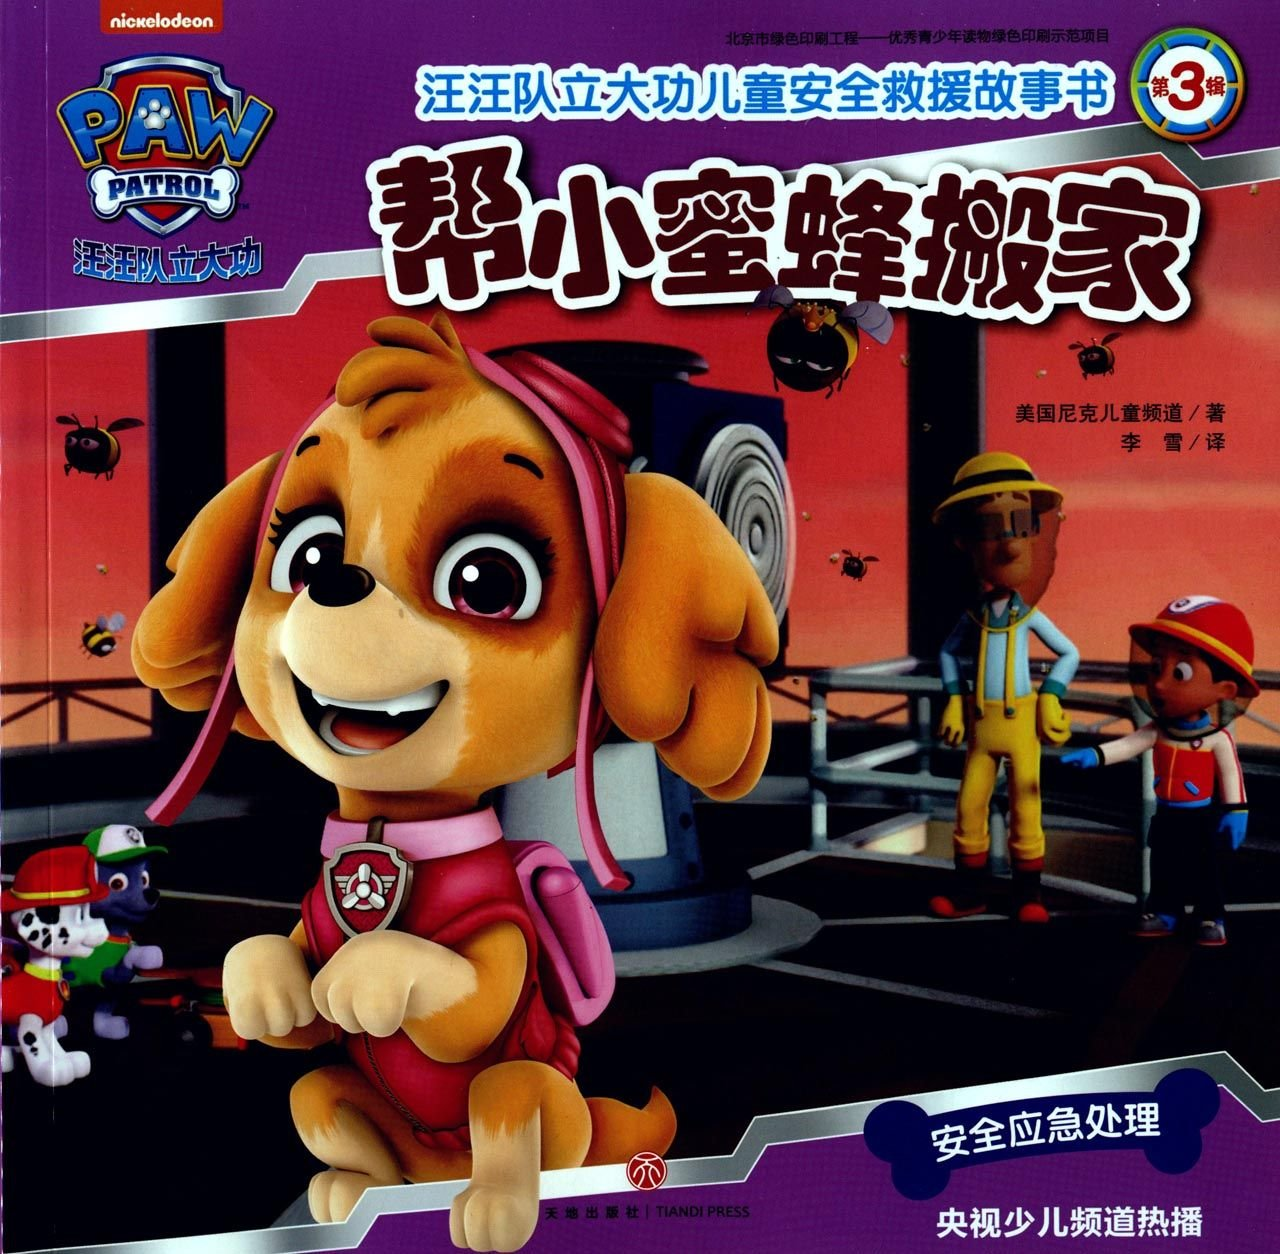 Help the Little Bee Move/ PAW Patrol Children's Safety and Rescue Storybook (Chinese Edition) ebook